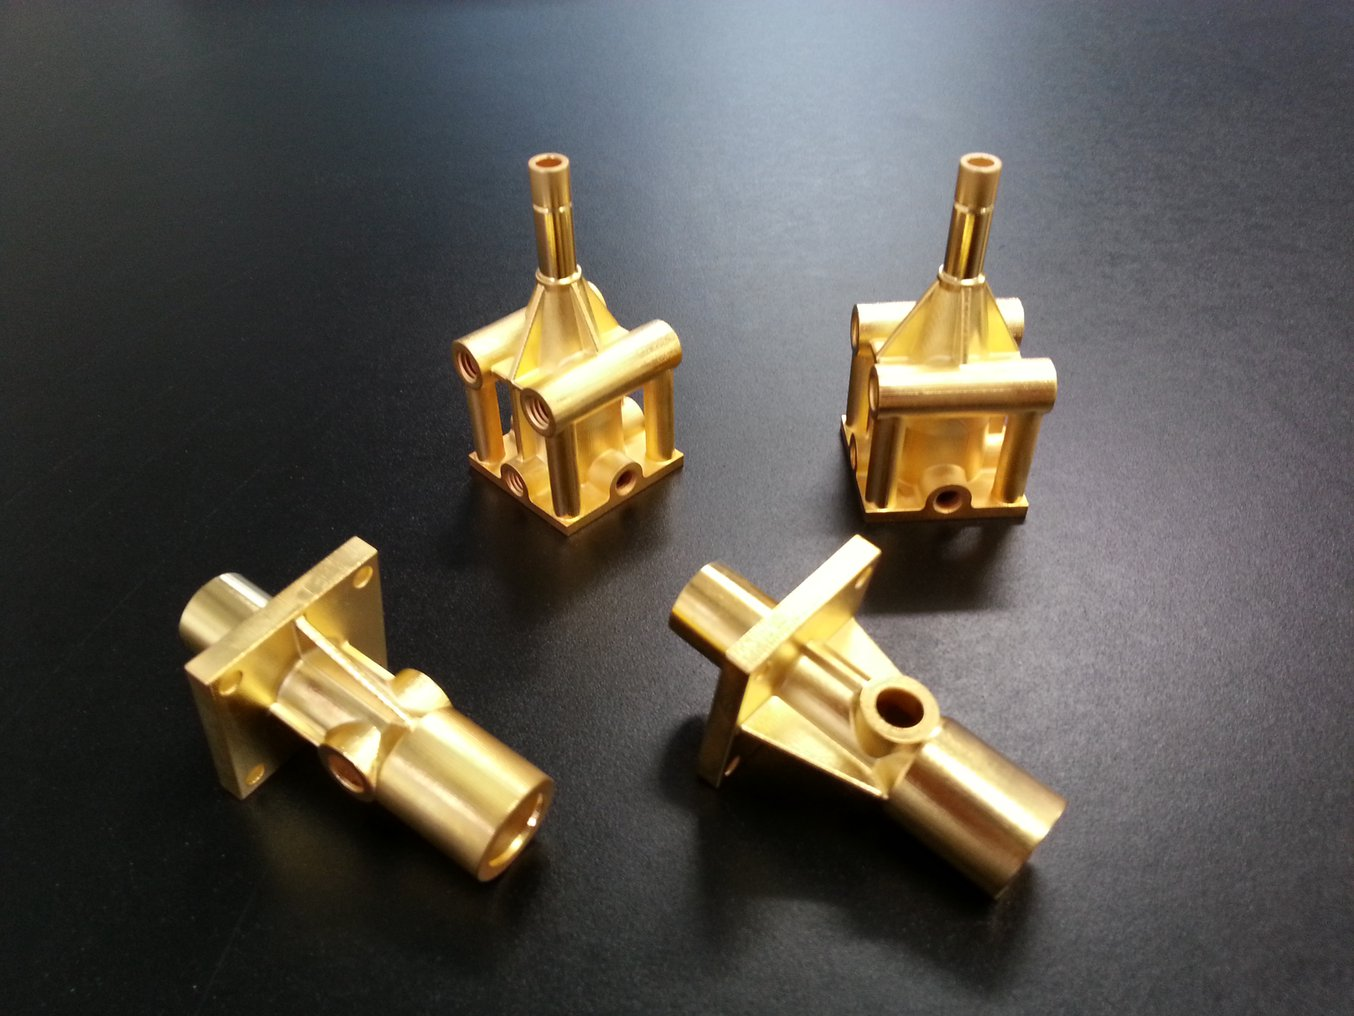 3D printed parts in gold, electroplated by the Swiss company Galvotec, one of few in the world specializing in metal coating for rapid prototyping.